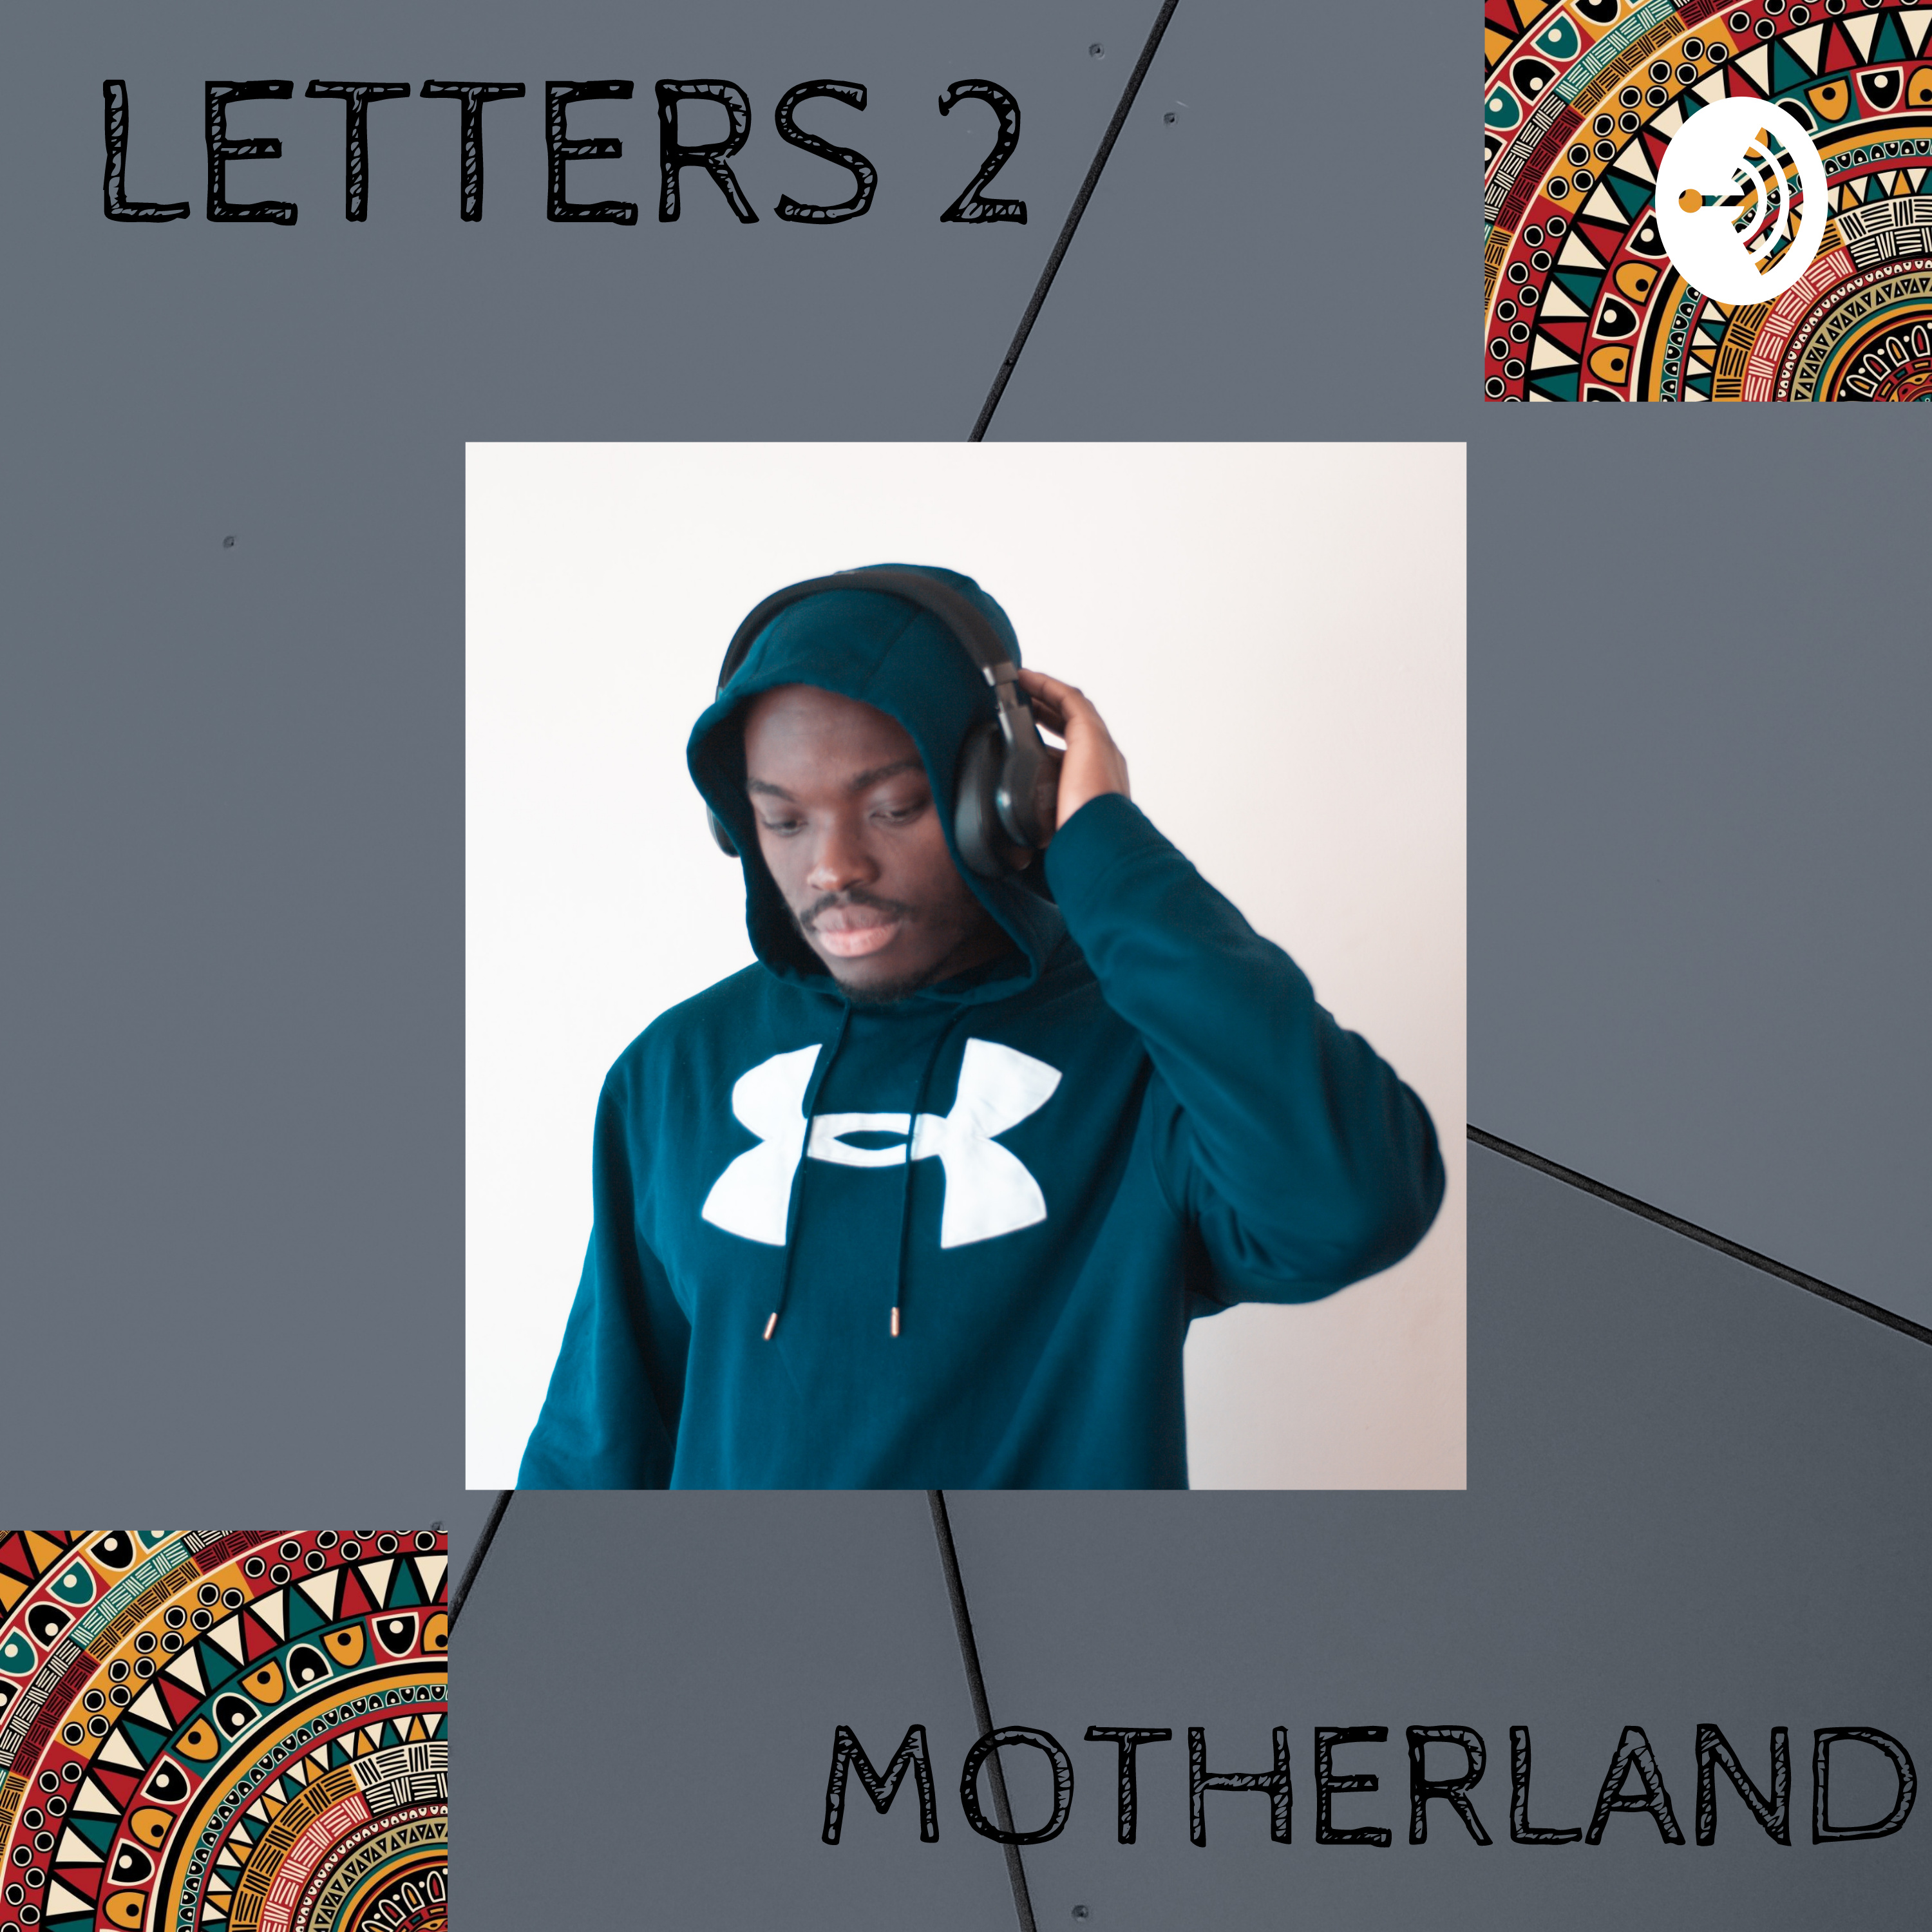 LETTERS 2 MOTHERLAND on Jamit